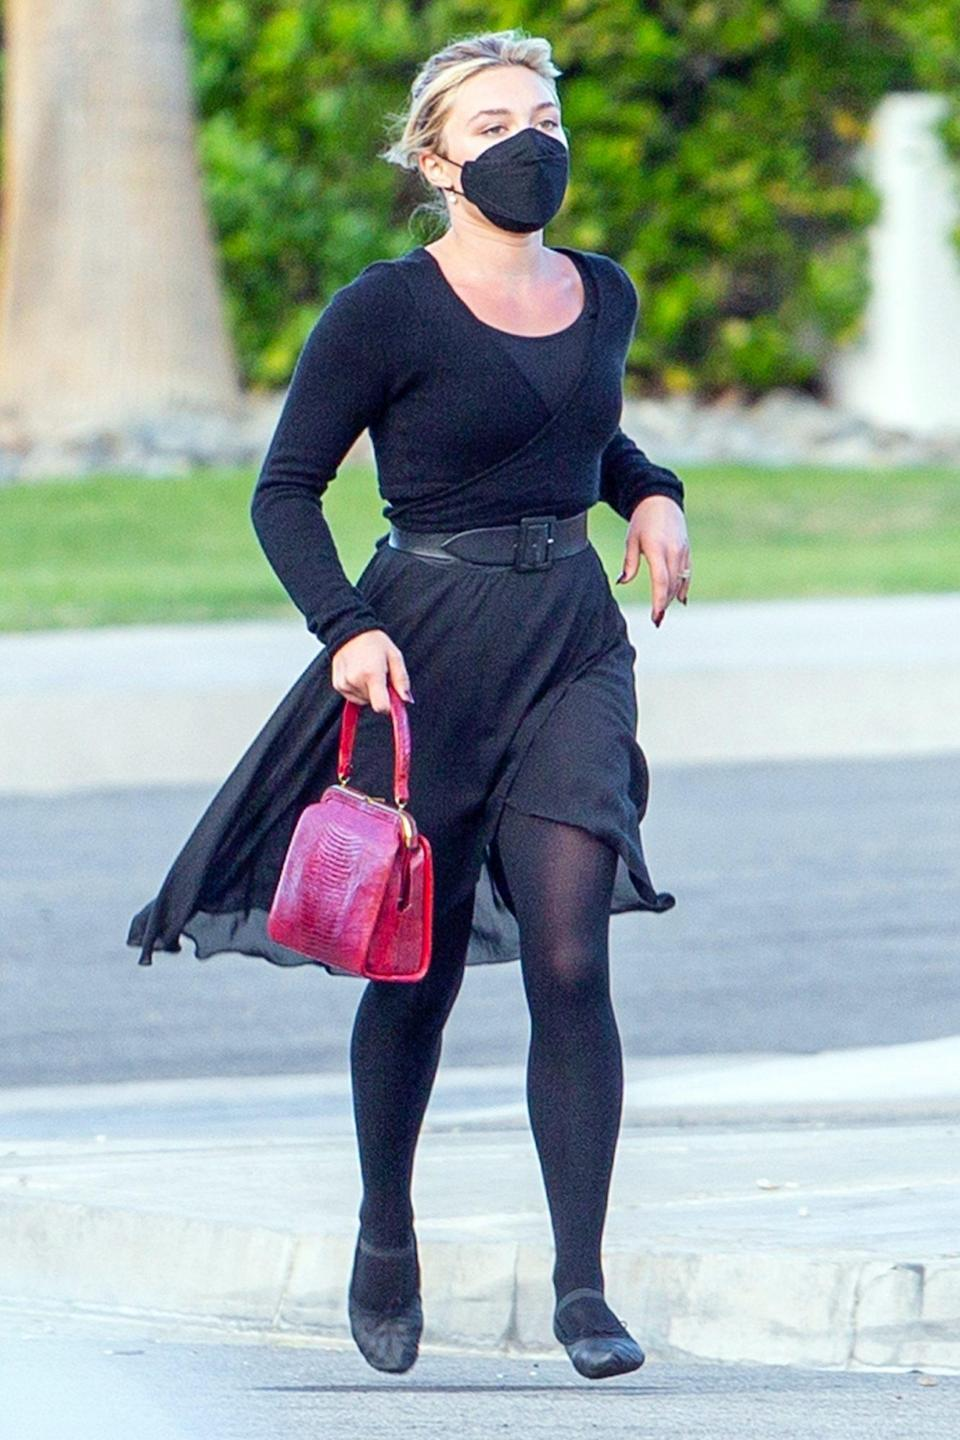 <p>Florence Pugh springs into action during a scene on the set of <em>Don't Worry Darling</em> on Wednesday in Palm Springs, California.</p>